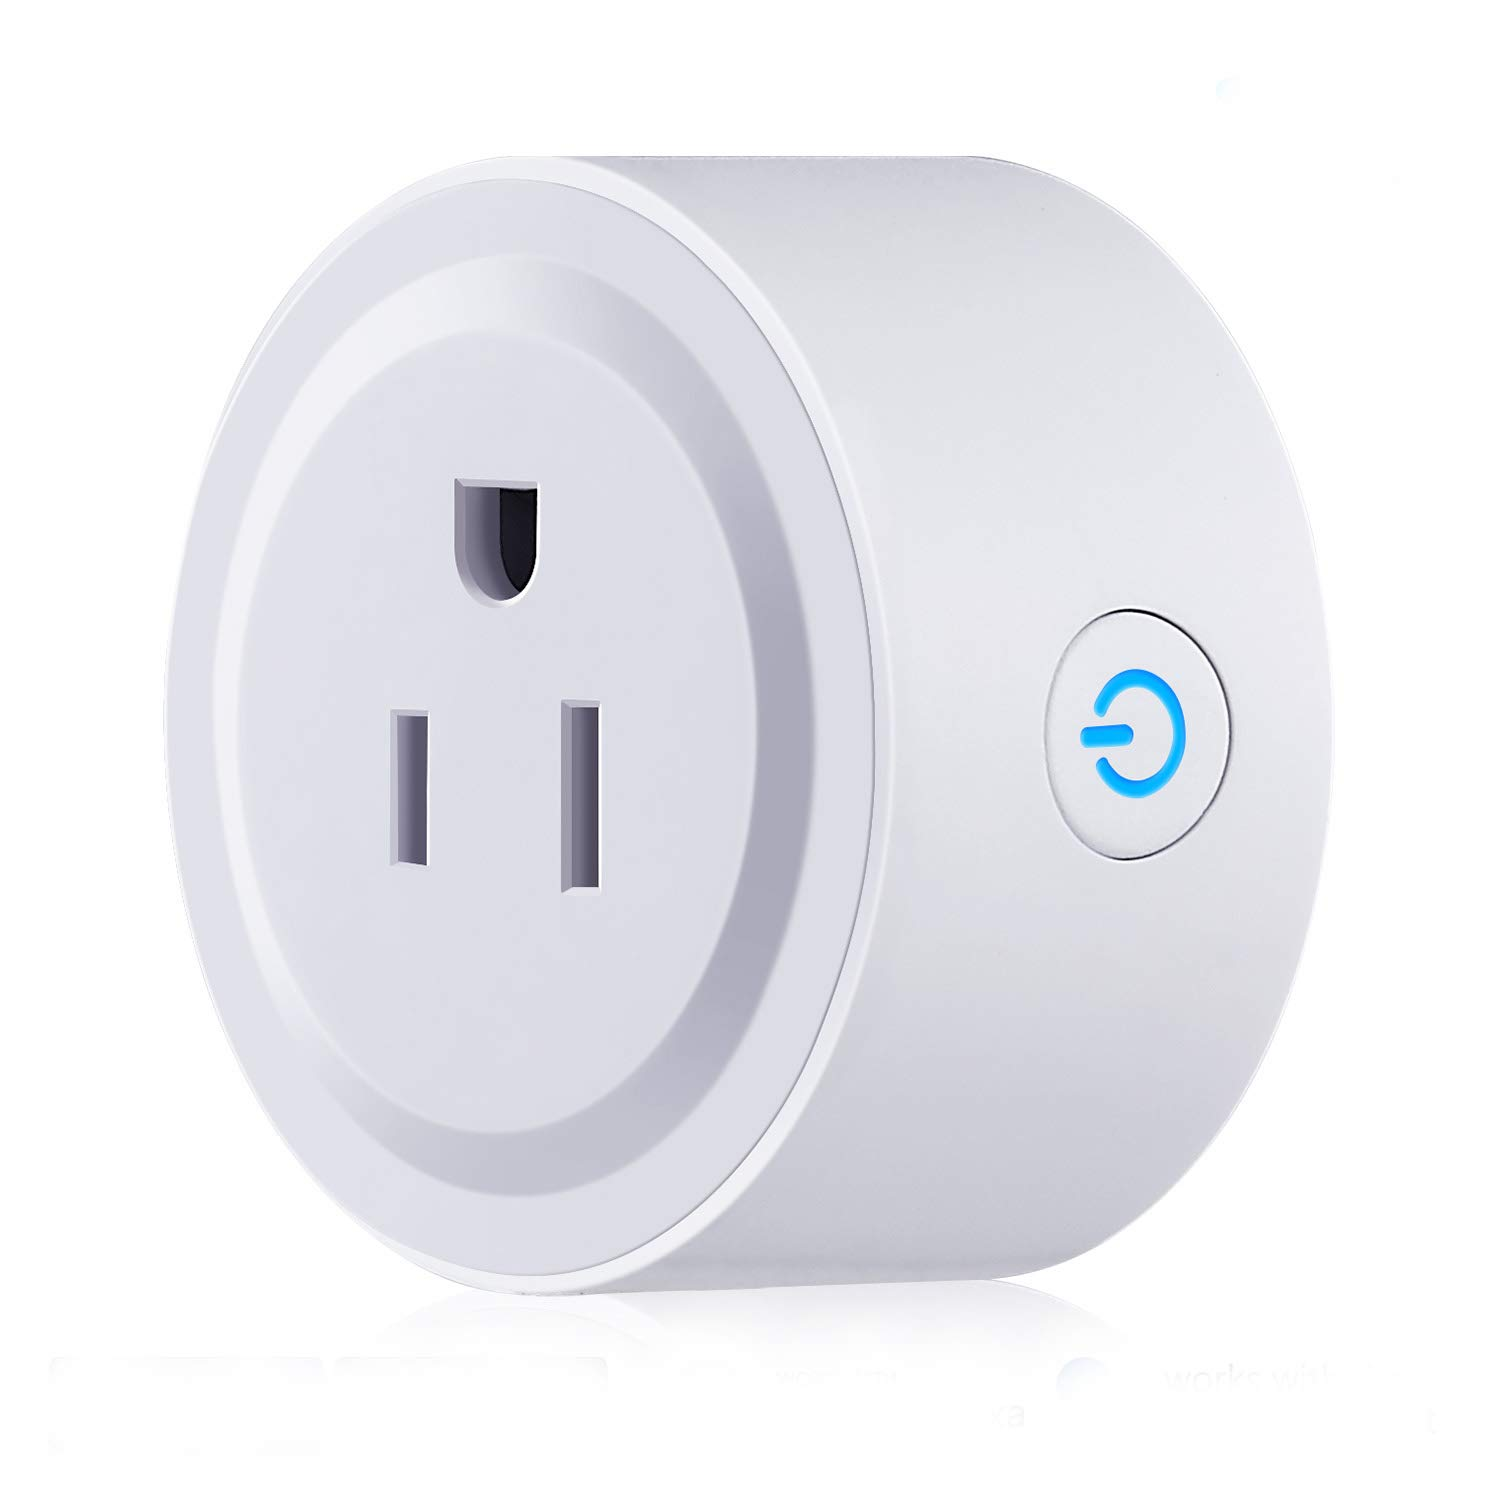 WiFi Smart Plug/Power Socket/Outlet Works with Amazon Echo Alexa and Google Home Voice Control Smart Home Wireless Controls Timing Smart Socket/Plug/Outlet